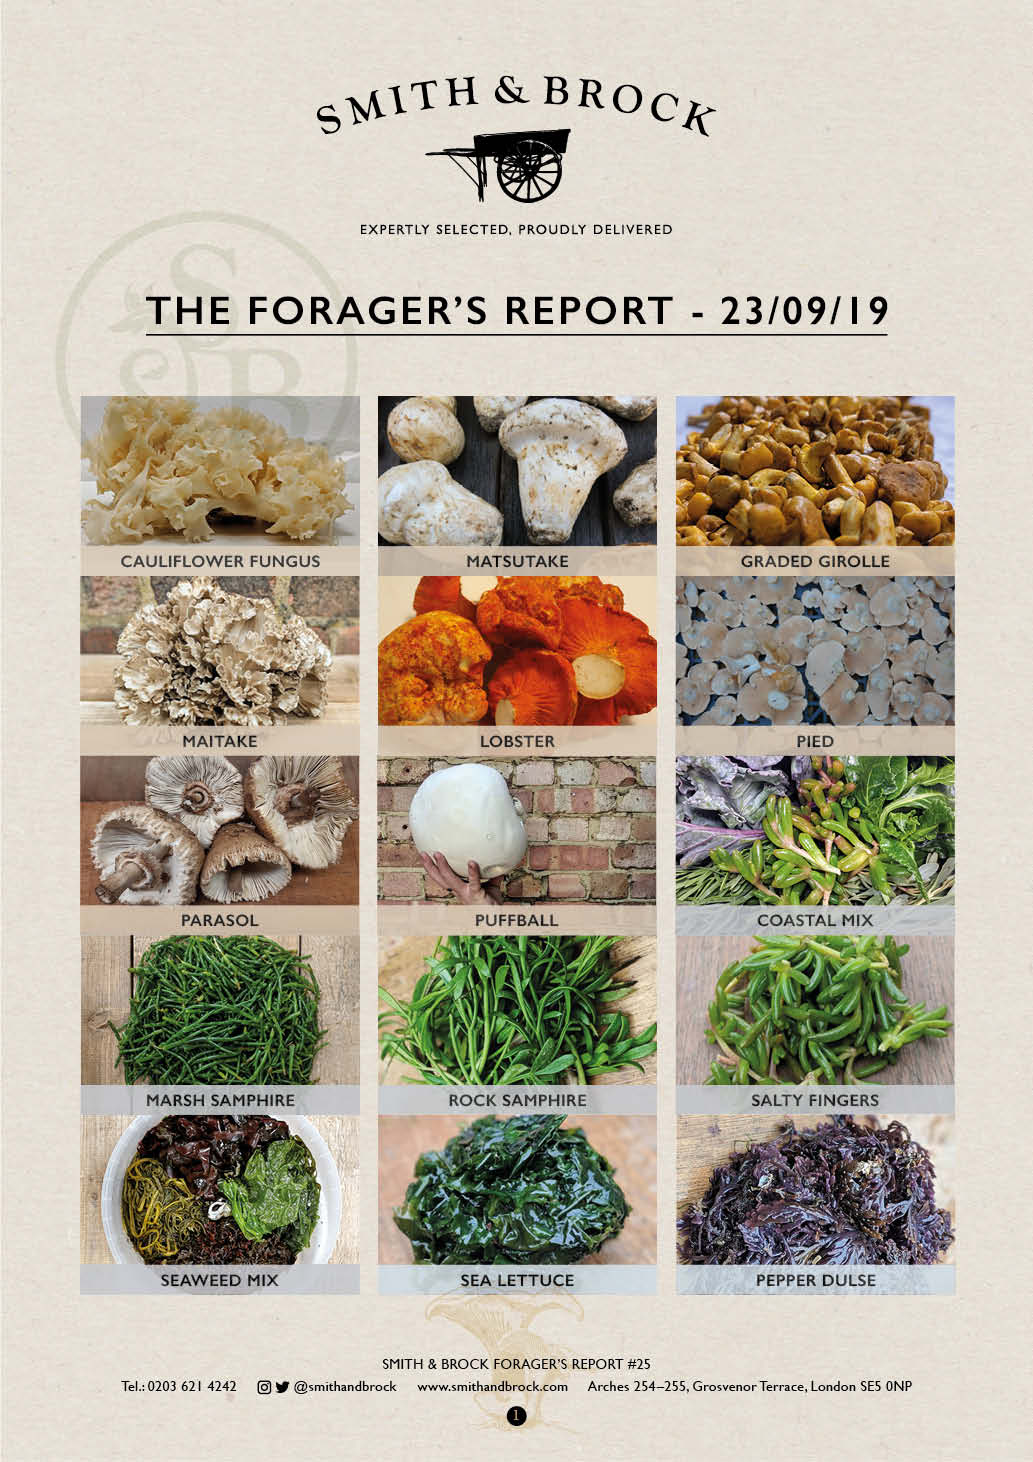 Smith&Brock Foraged Products Report 23 Sep 2019 25